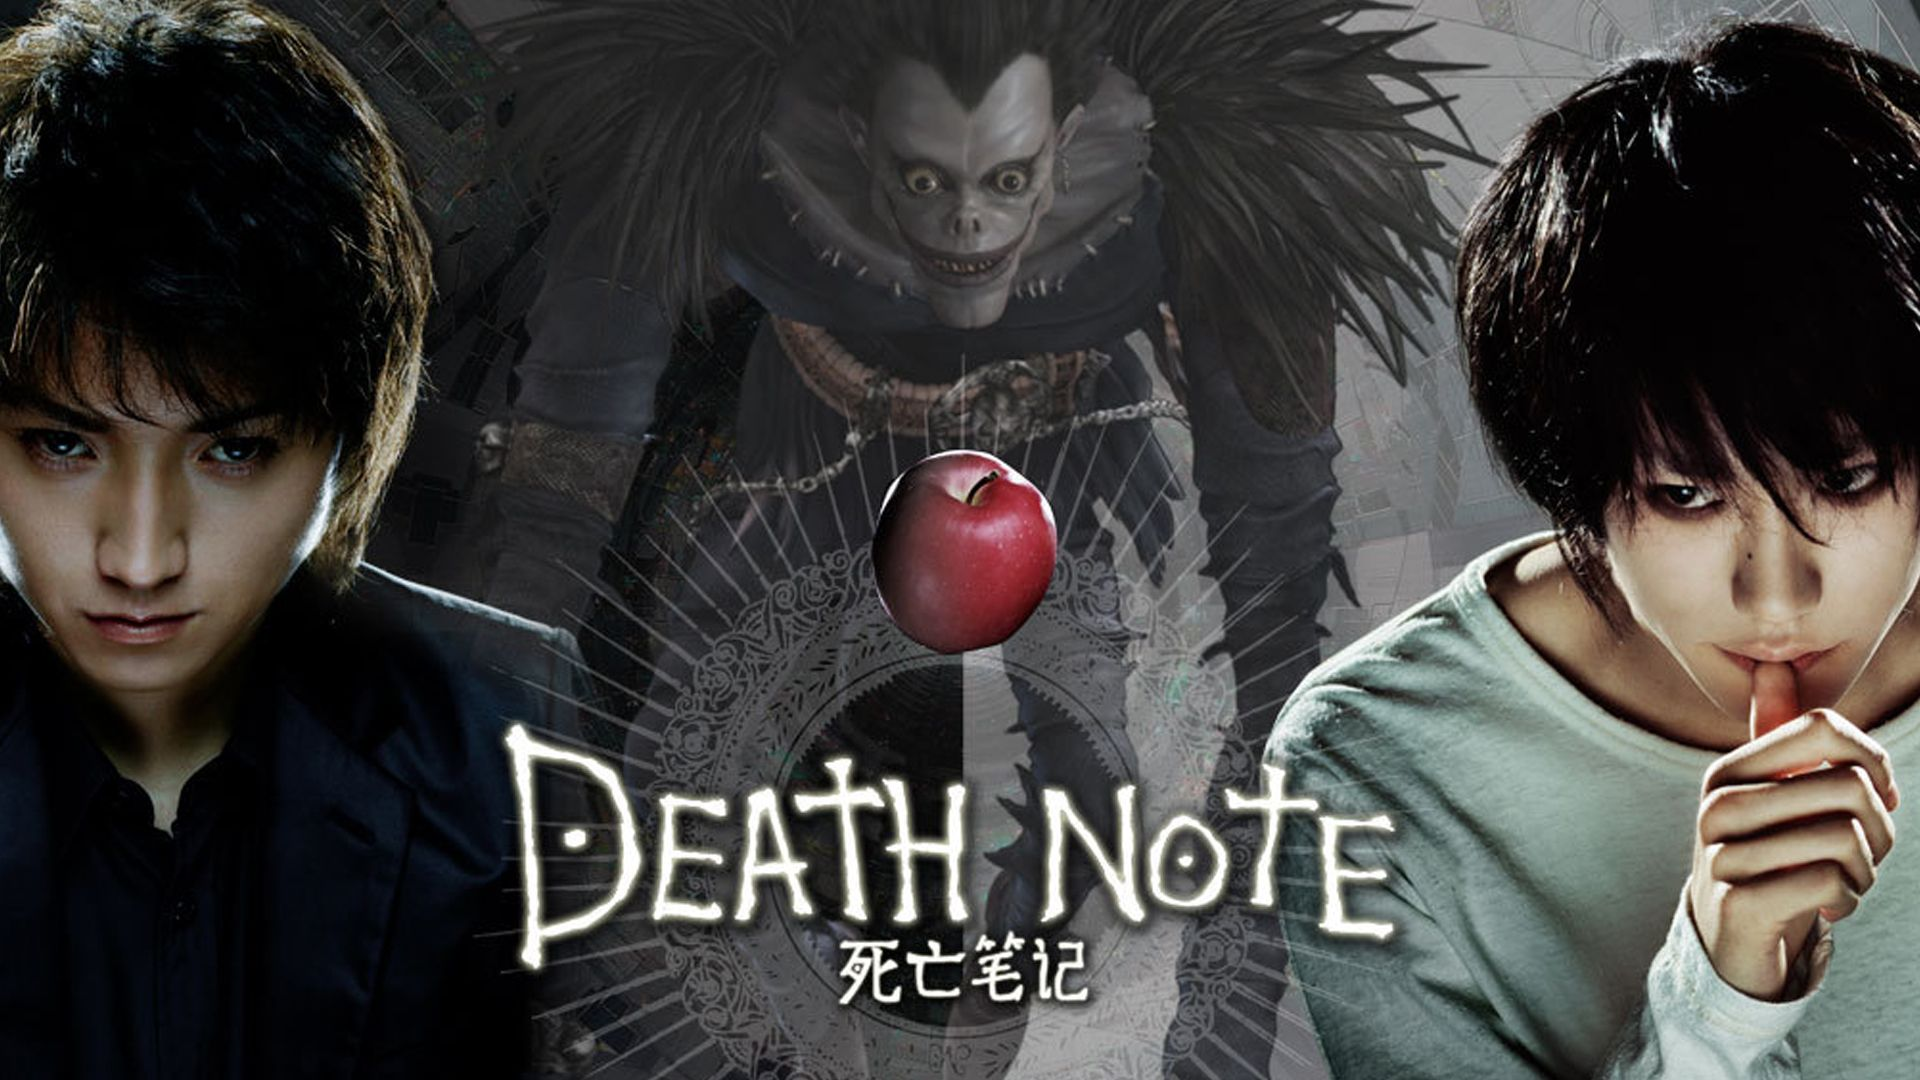 Death Note Movie Wallpapers Top Free Death Note Movie